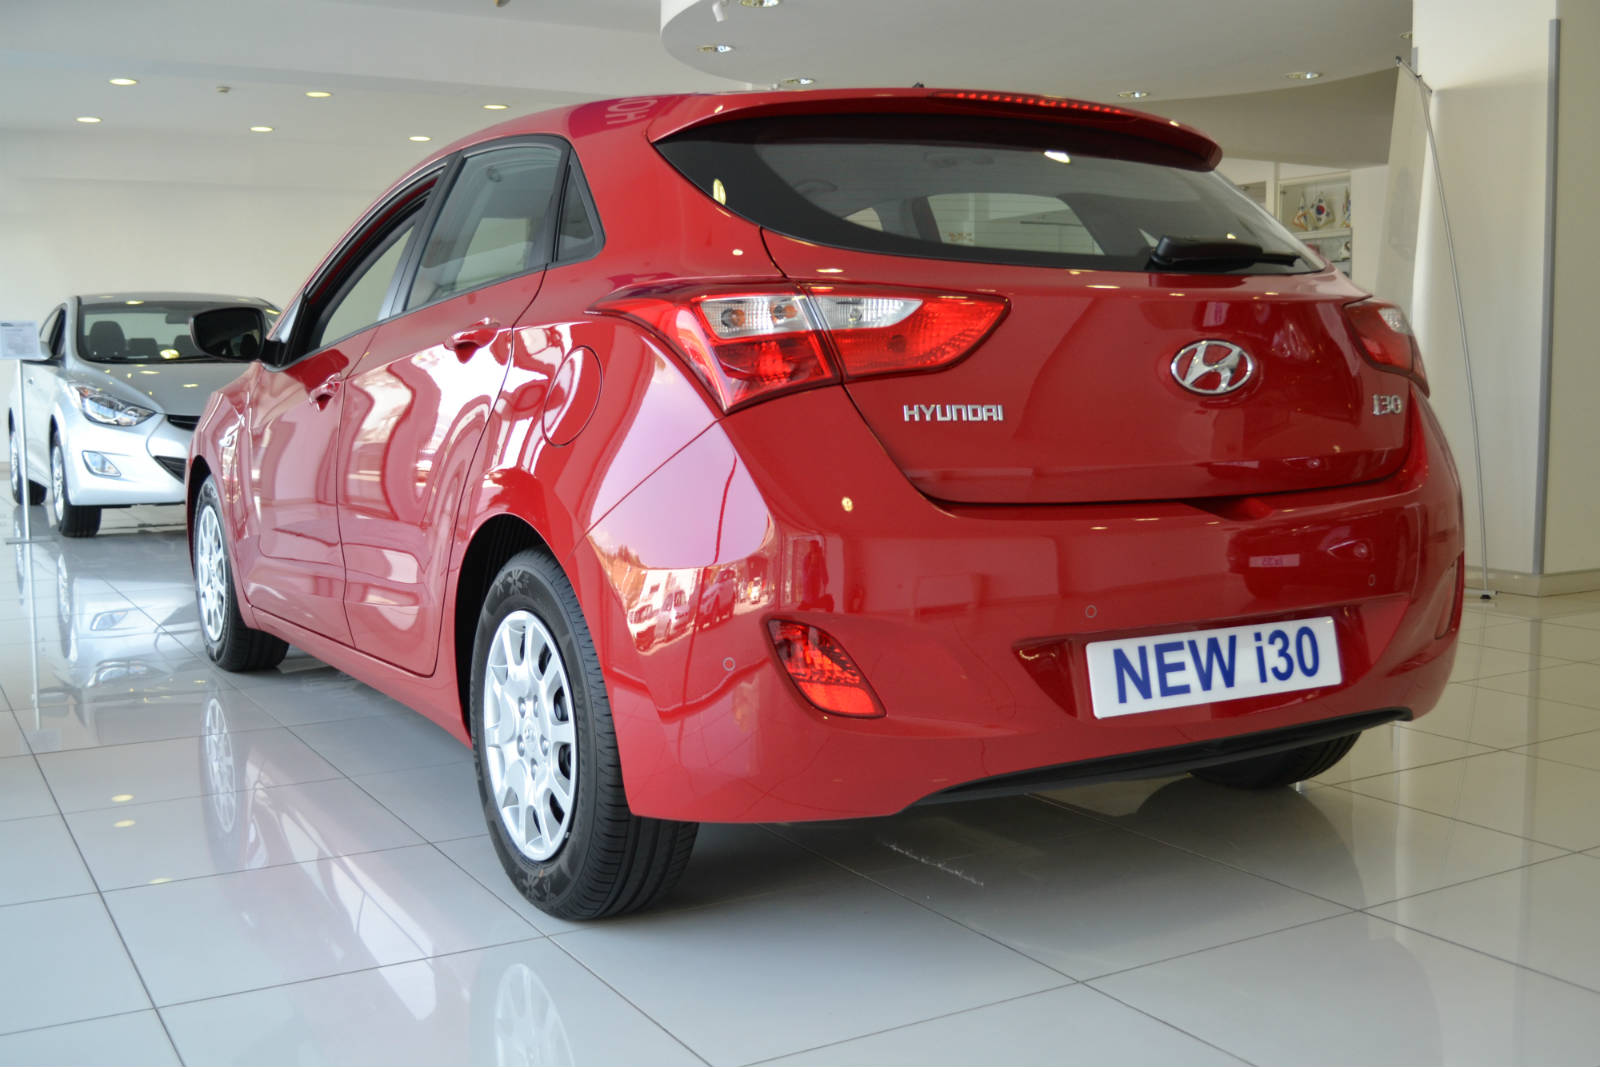 7 Facts About the 2013 Hyundai i30 The Story about the Space